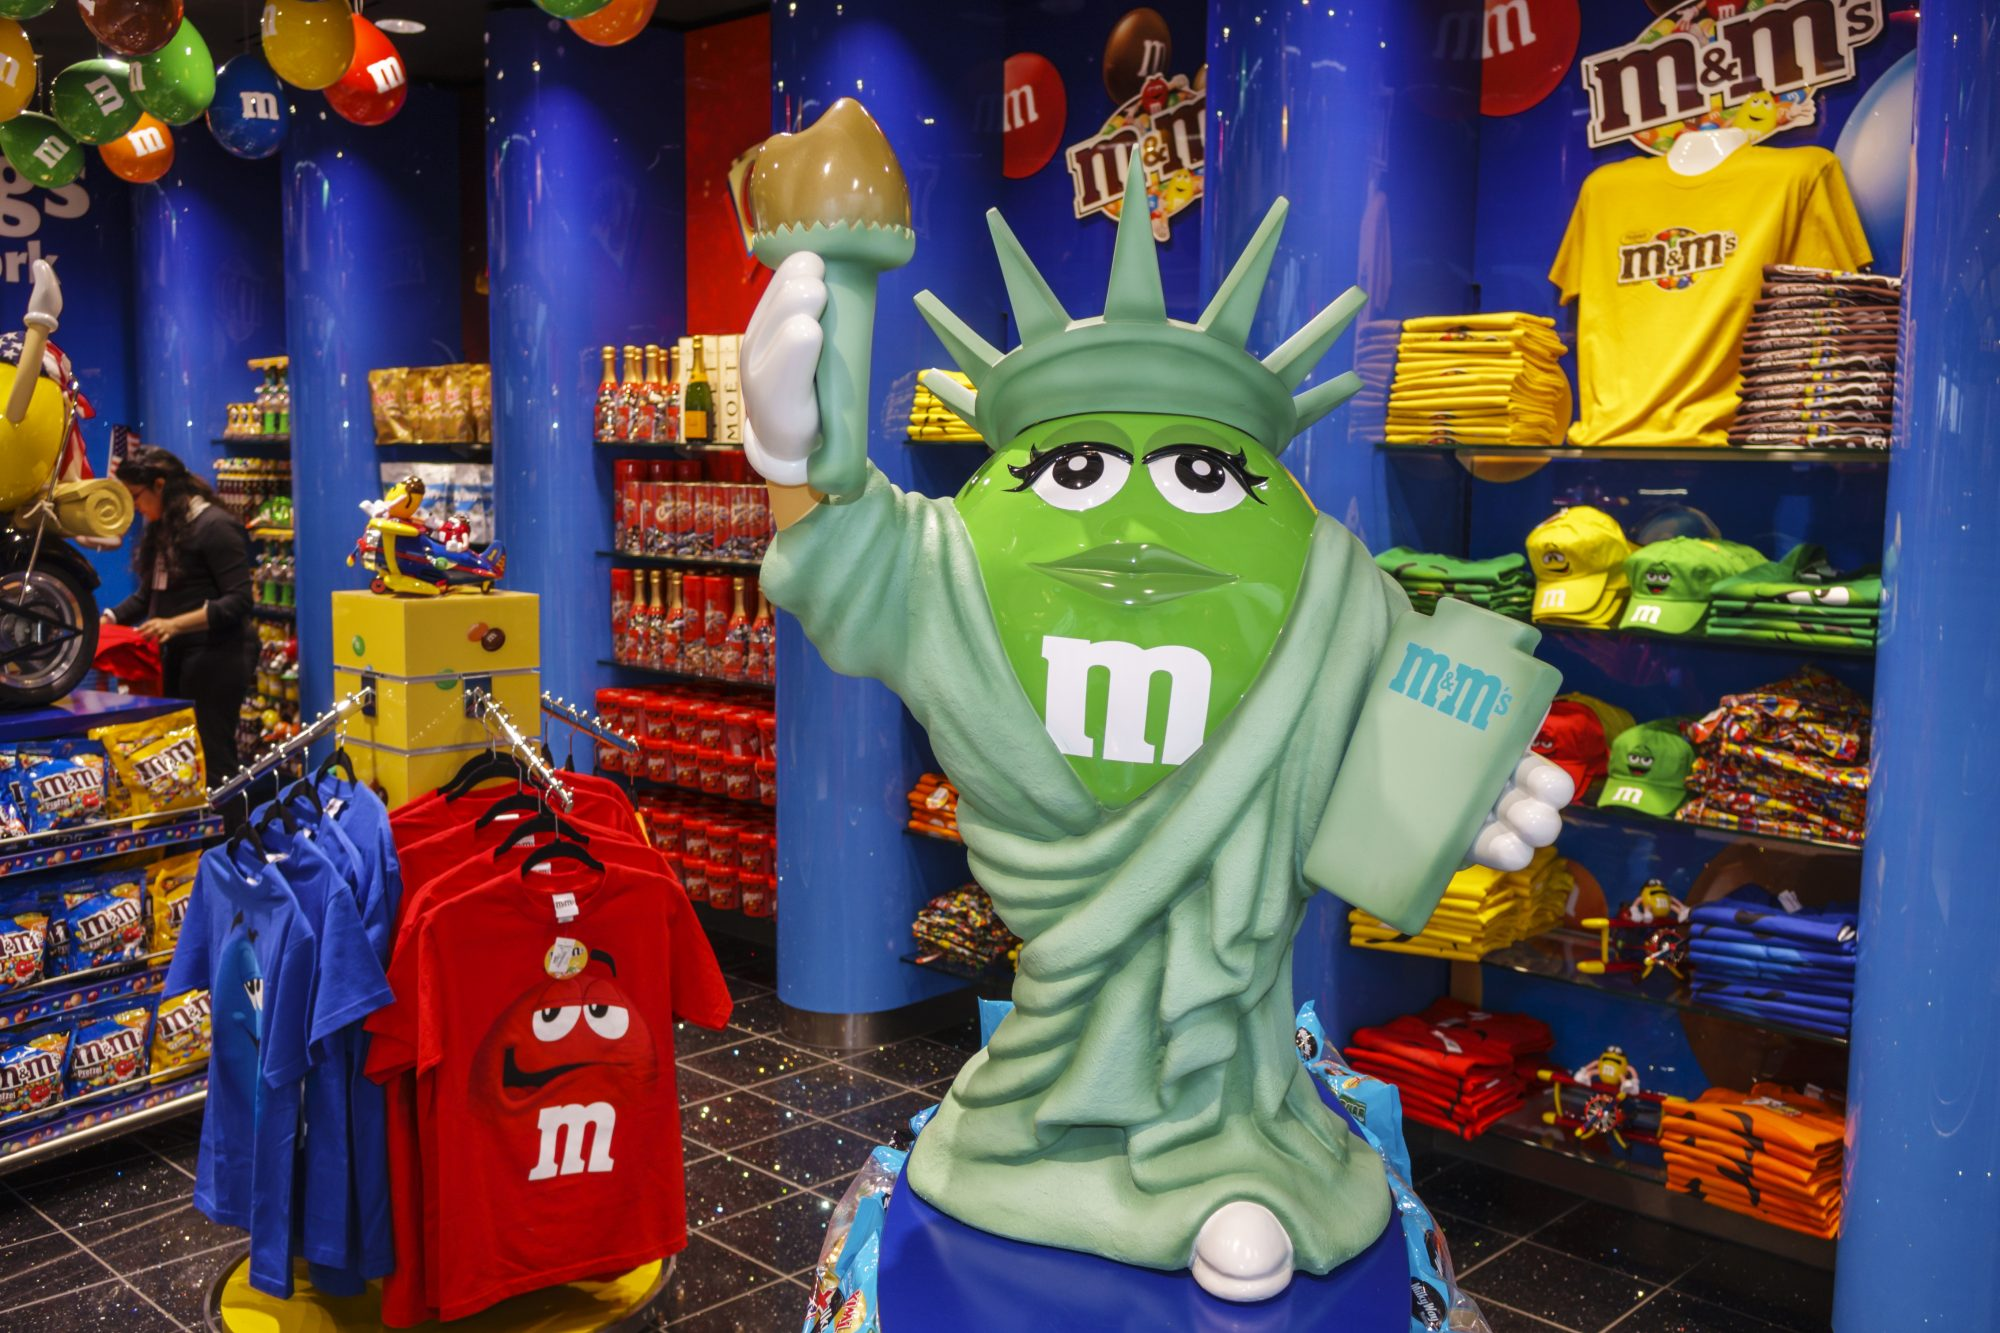 The interior of the M&M's store at John F. Kennedy International Airport.